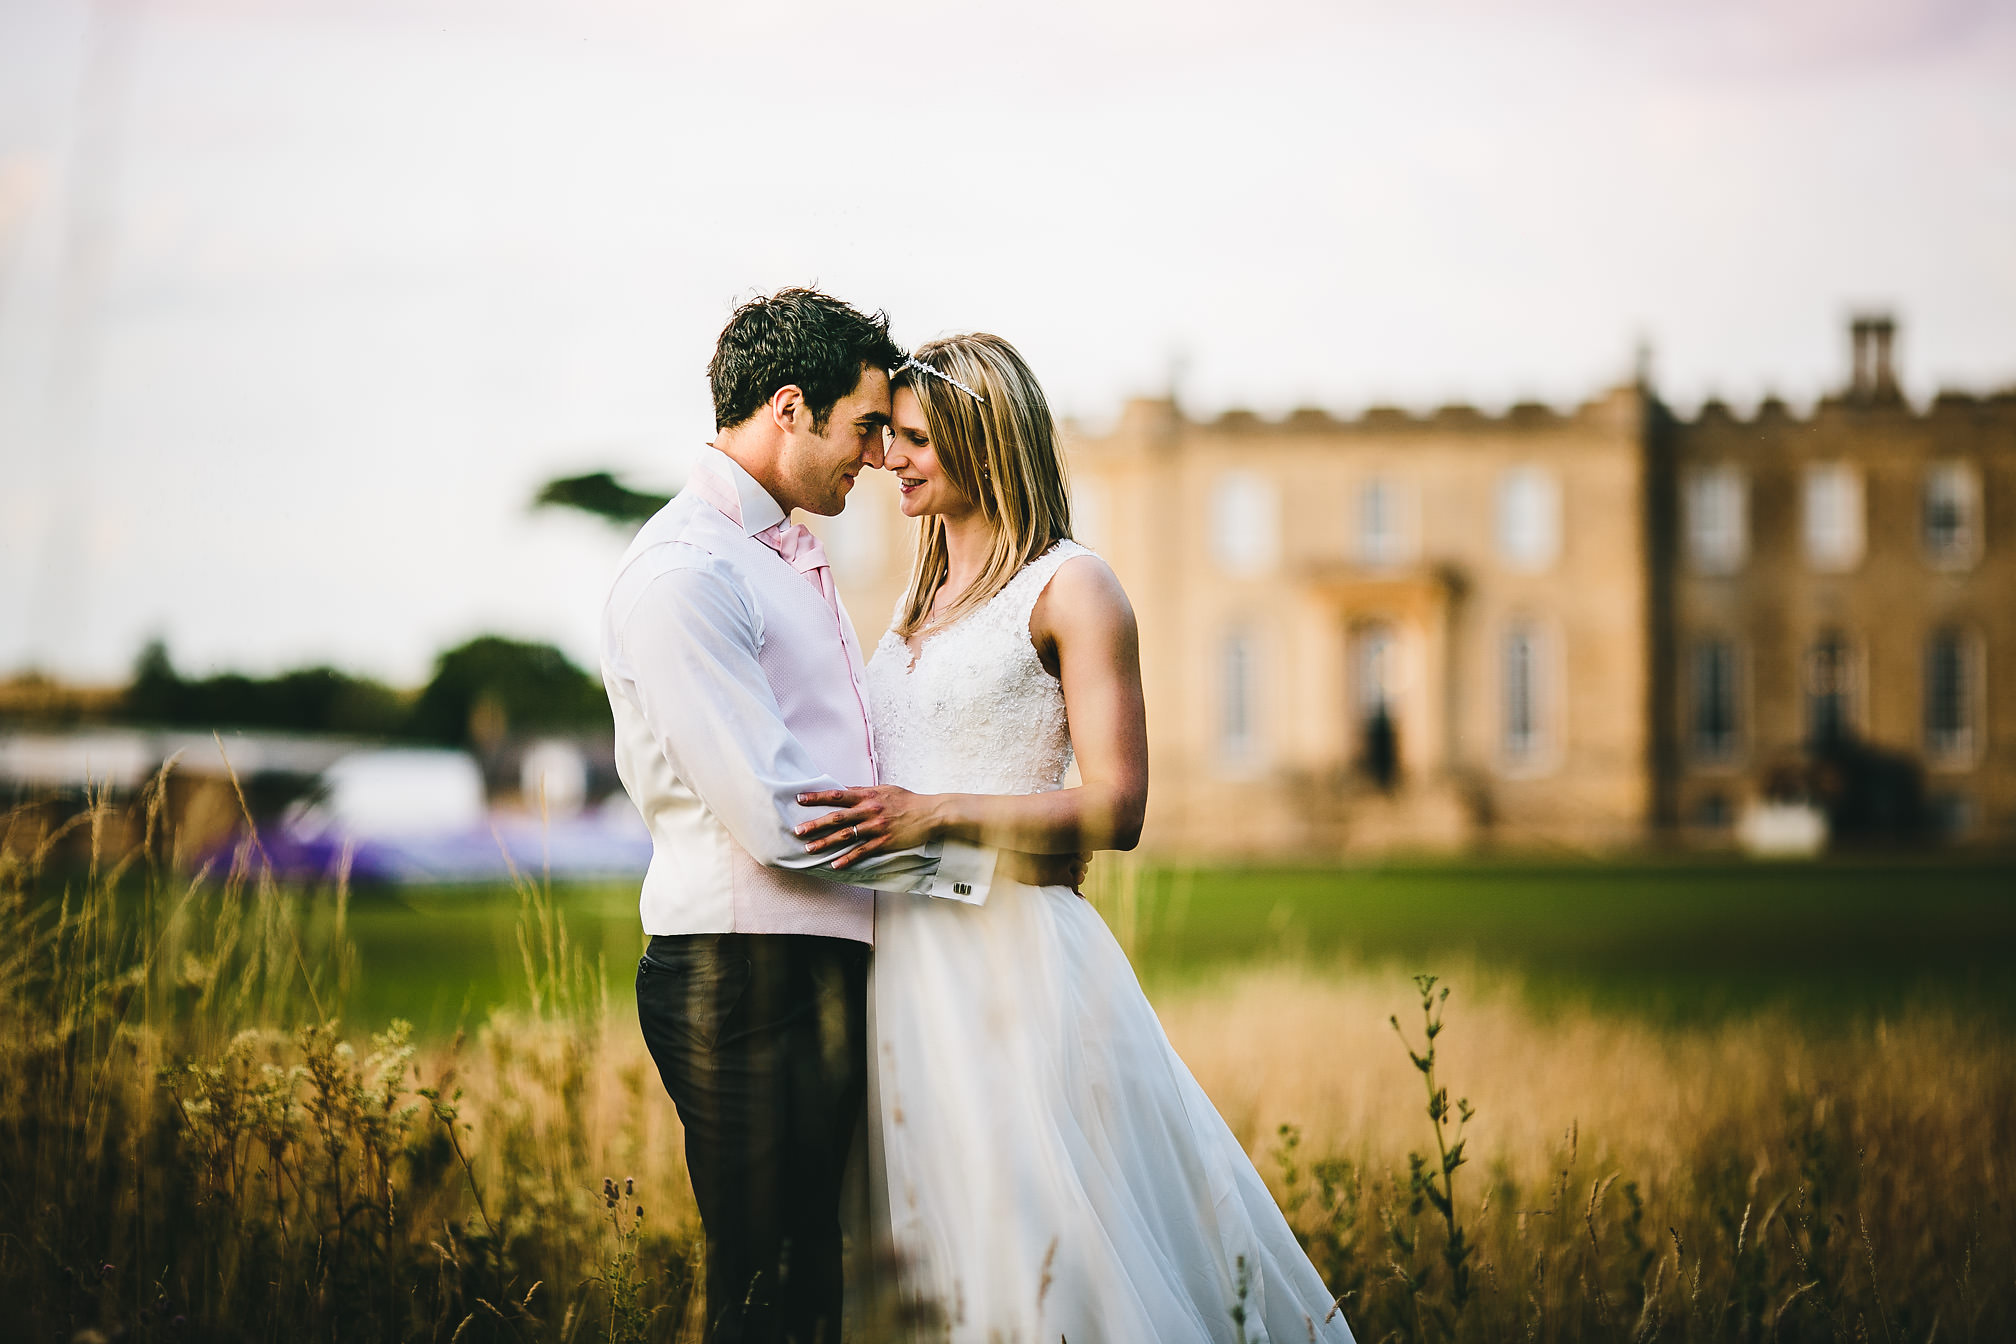 Kara & Javi, sunset portrait at Kimbolton Castle